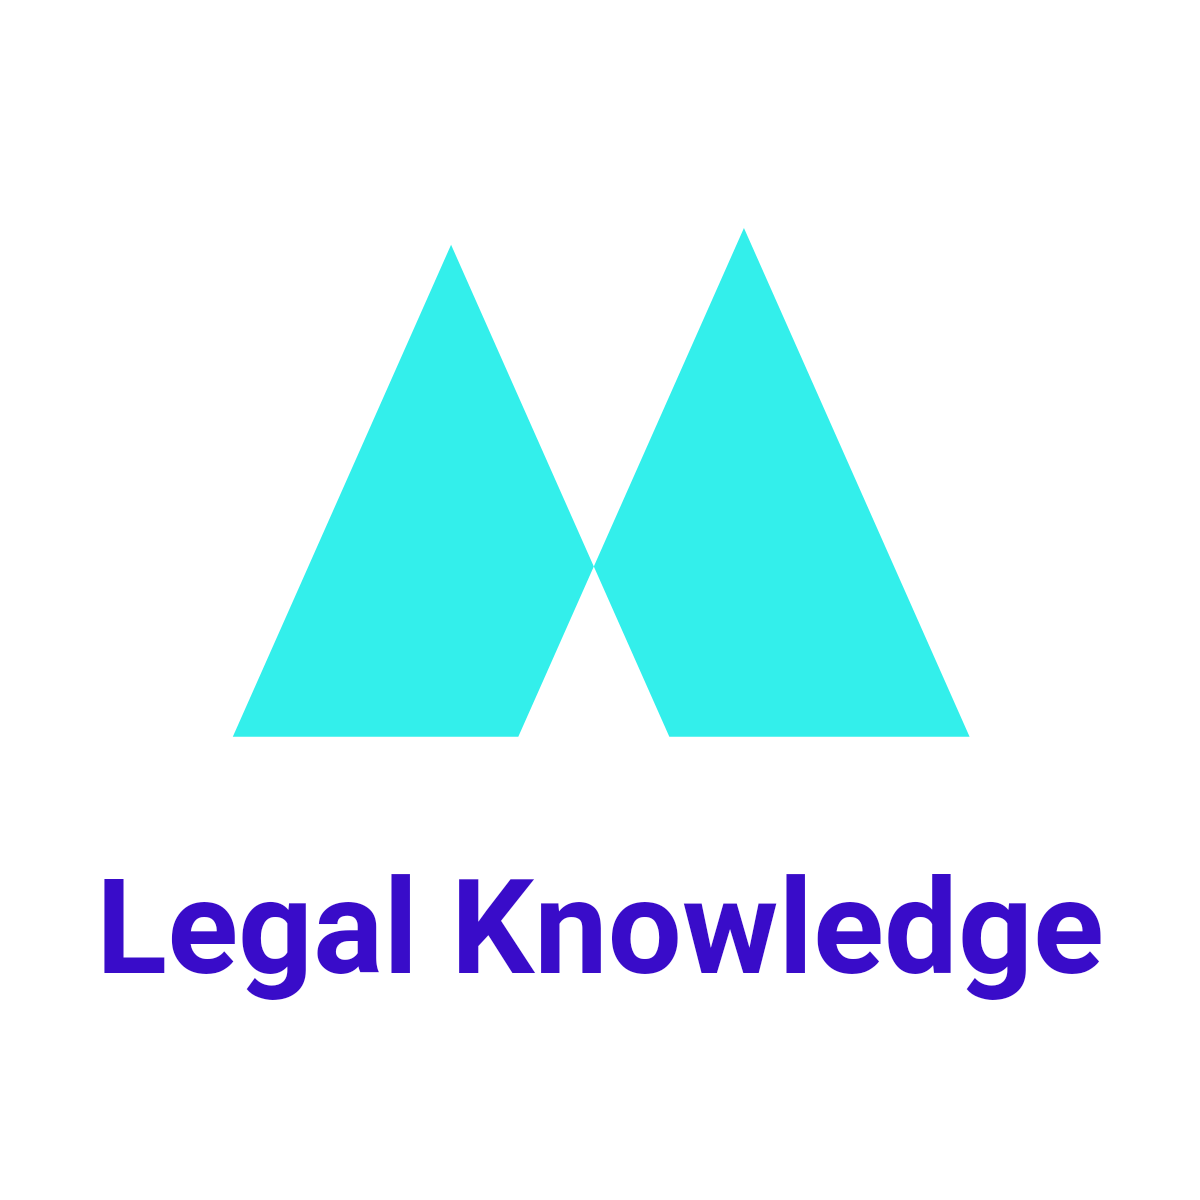 Legal knowledge